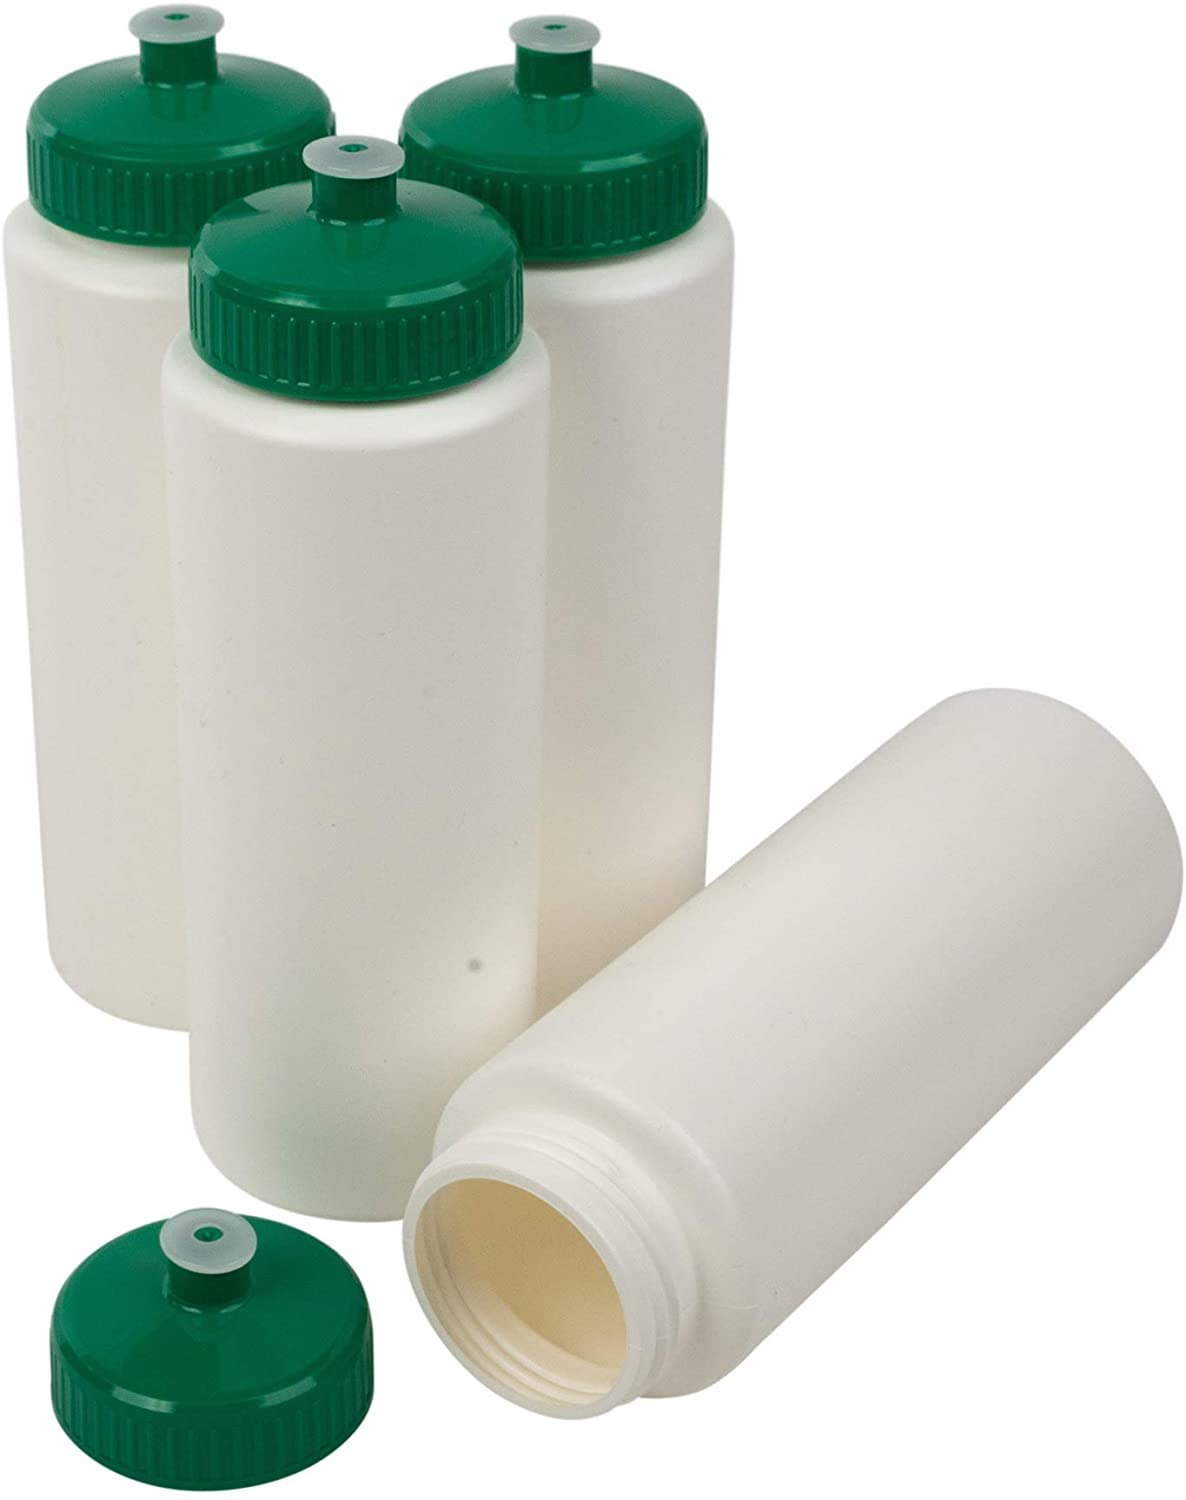 CSBD 32oz Sports Water Bottles Reusable To No Complete Free Large discharge sale Shipping Plastic Pull BPA